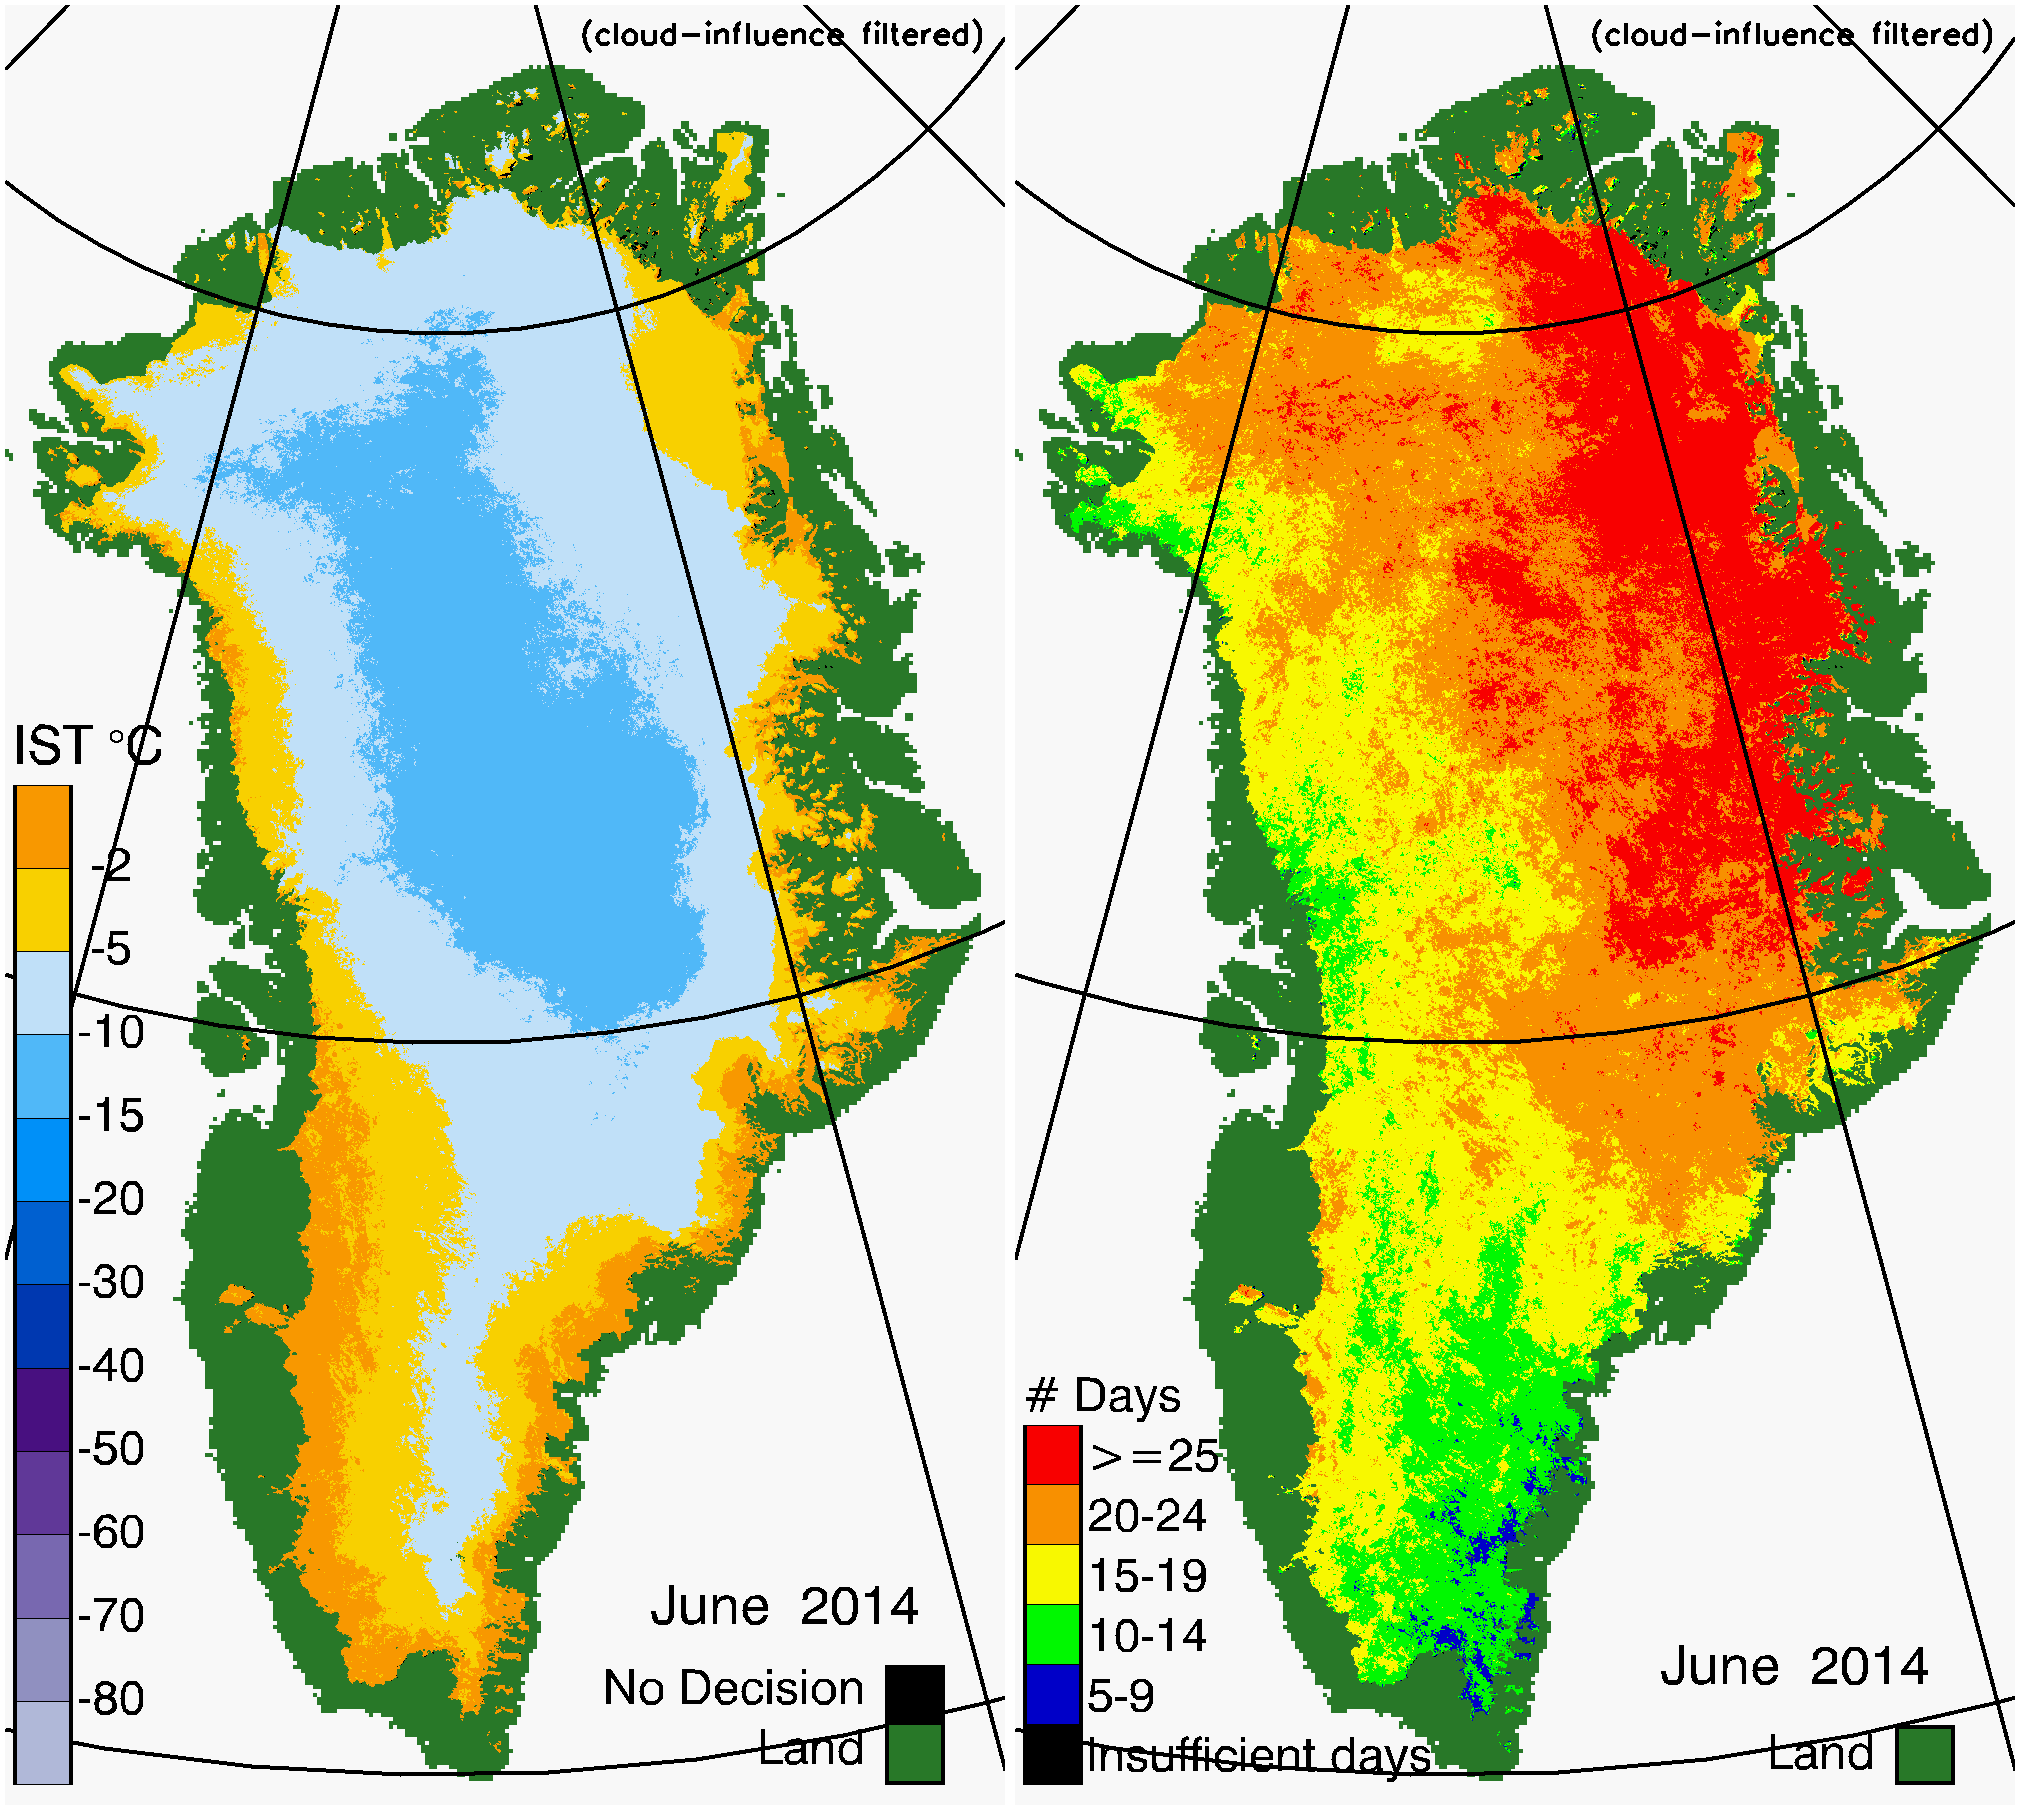 Greenland Surface Temp 06/2014